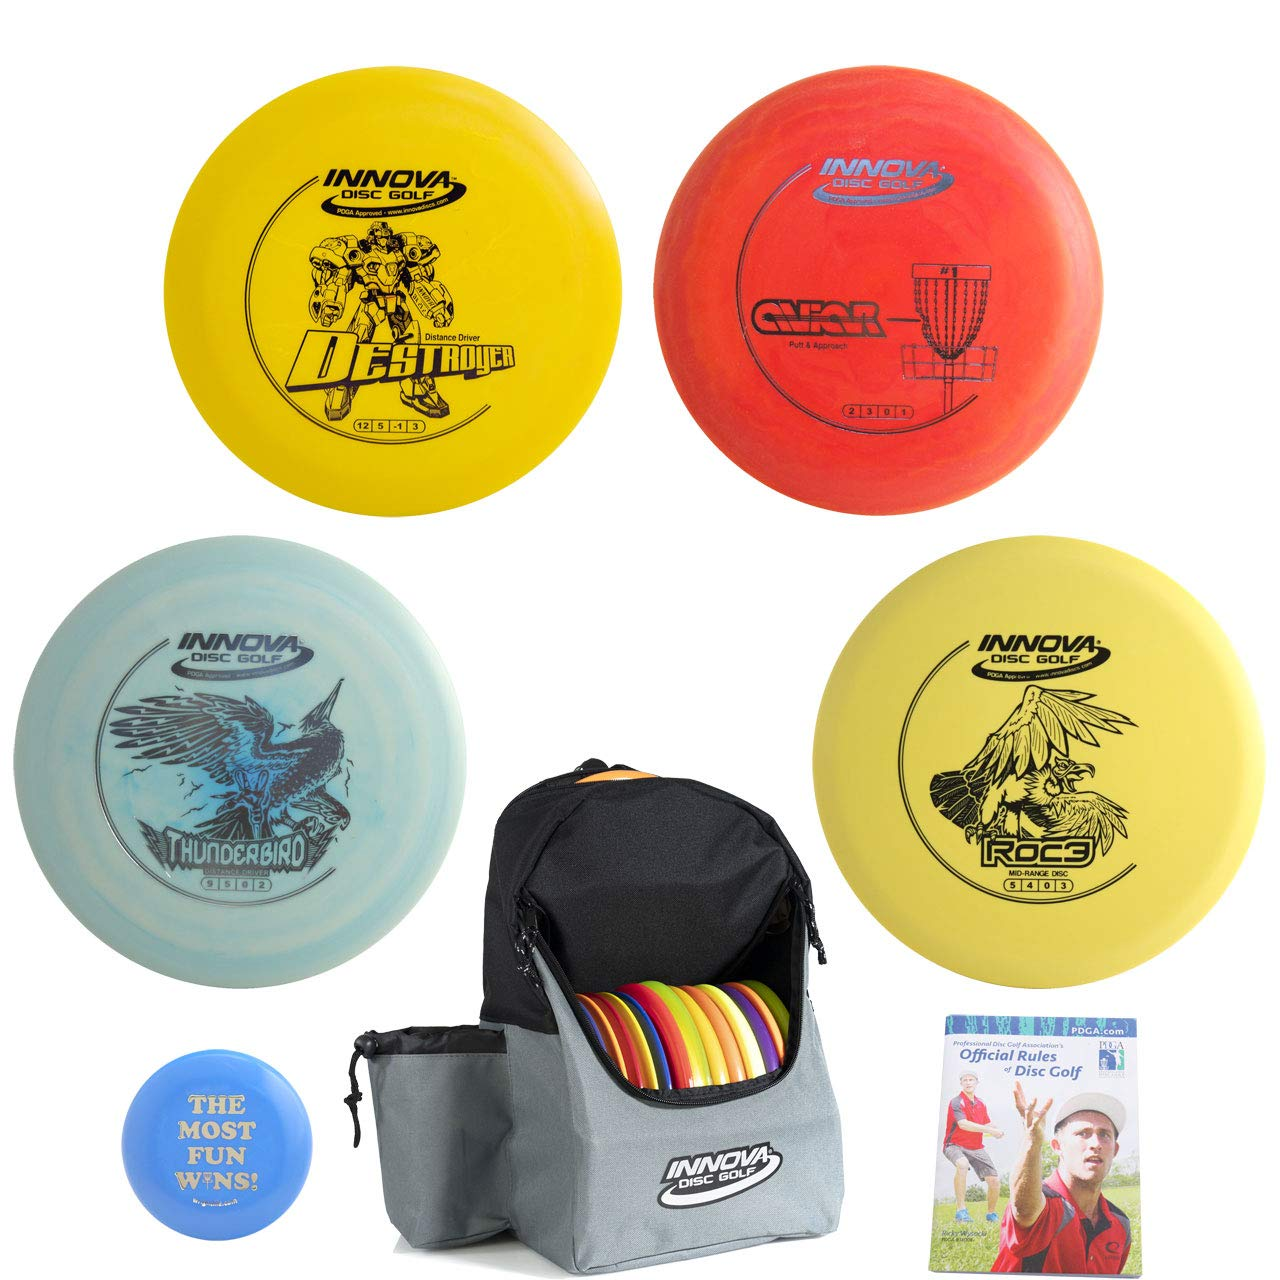 Innova Disc Golf Complete Advanced Set Gift Bundle - Discover Backpack Bag, 2 Drivers, Mid-Range, Putter + Mini Marker Disc & Rules (7 Items) (Bag: Red/Gray) by Innova Disc Golf